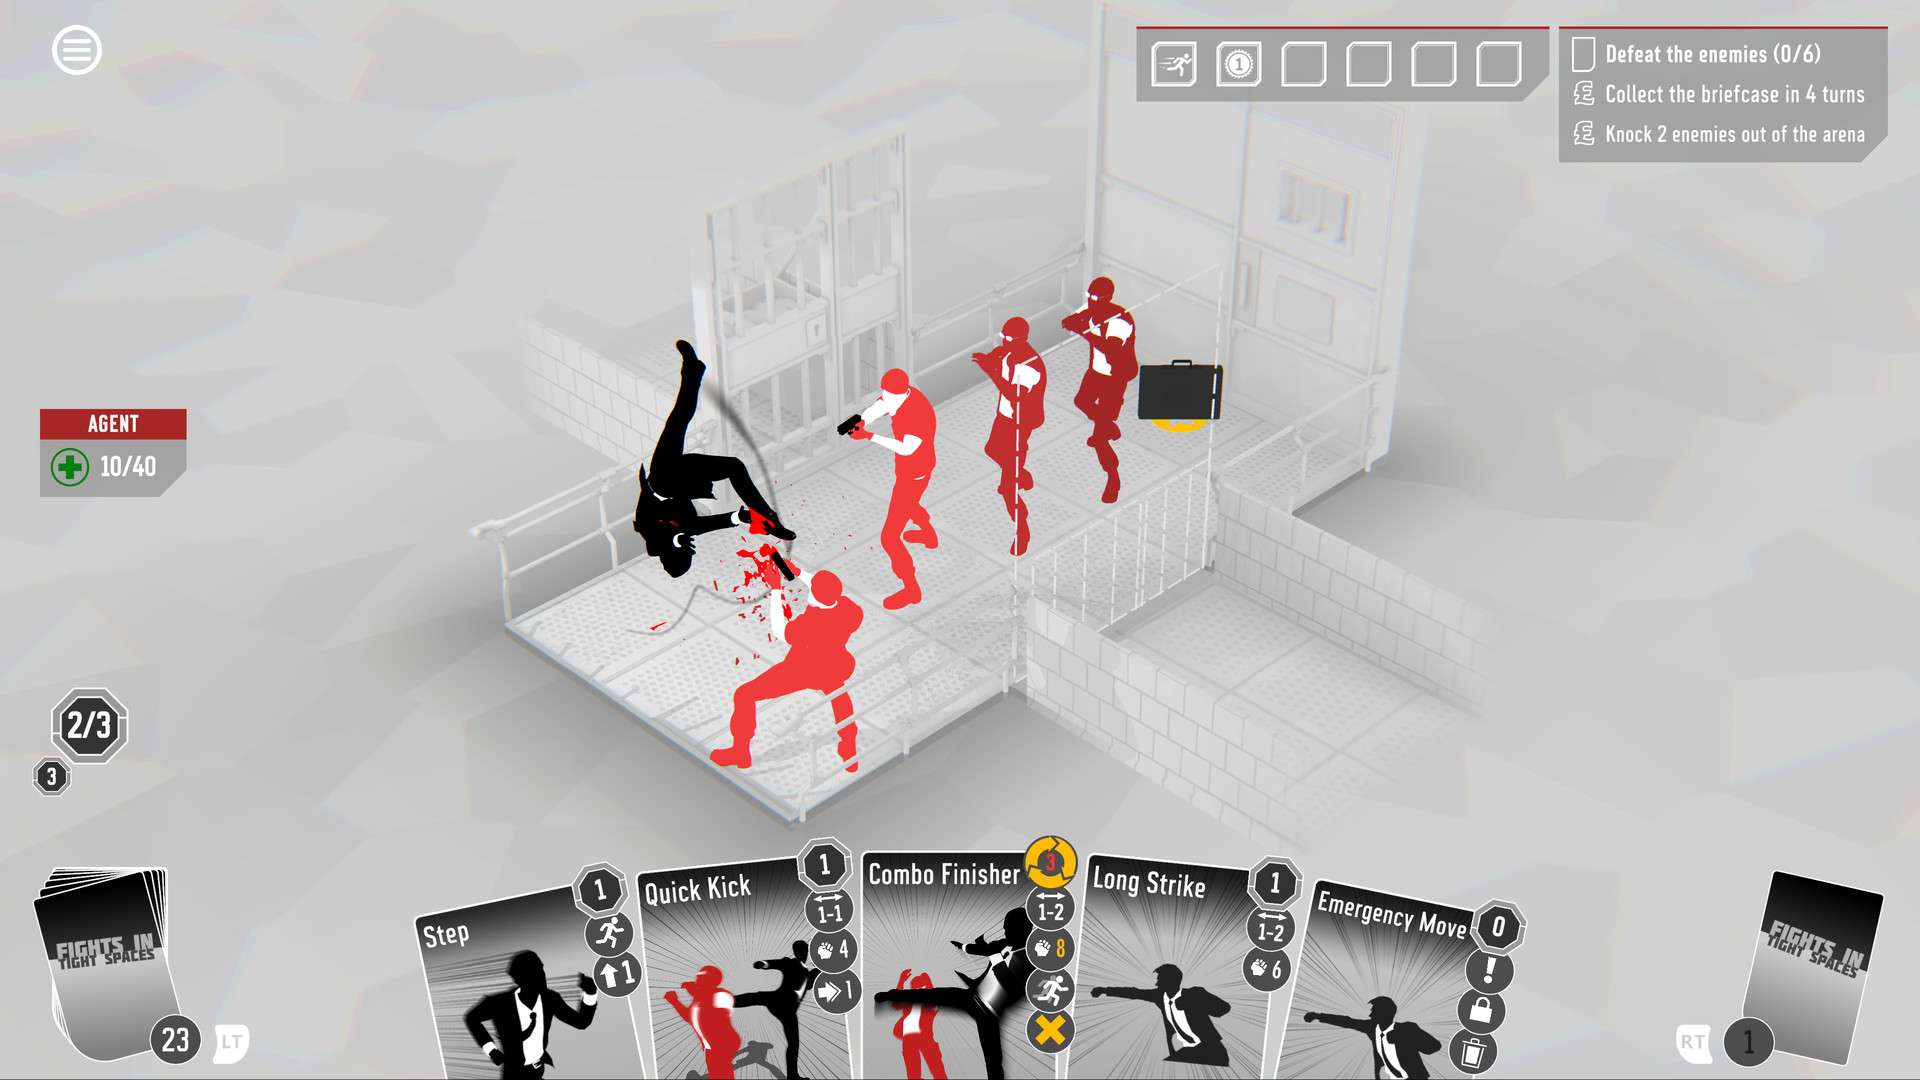 Fights in Tight Spaces Screenshot